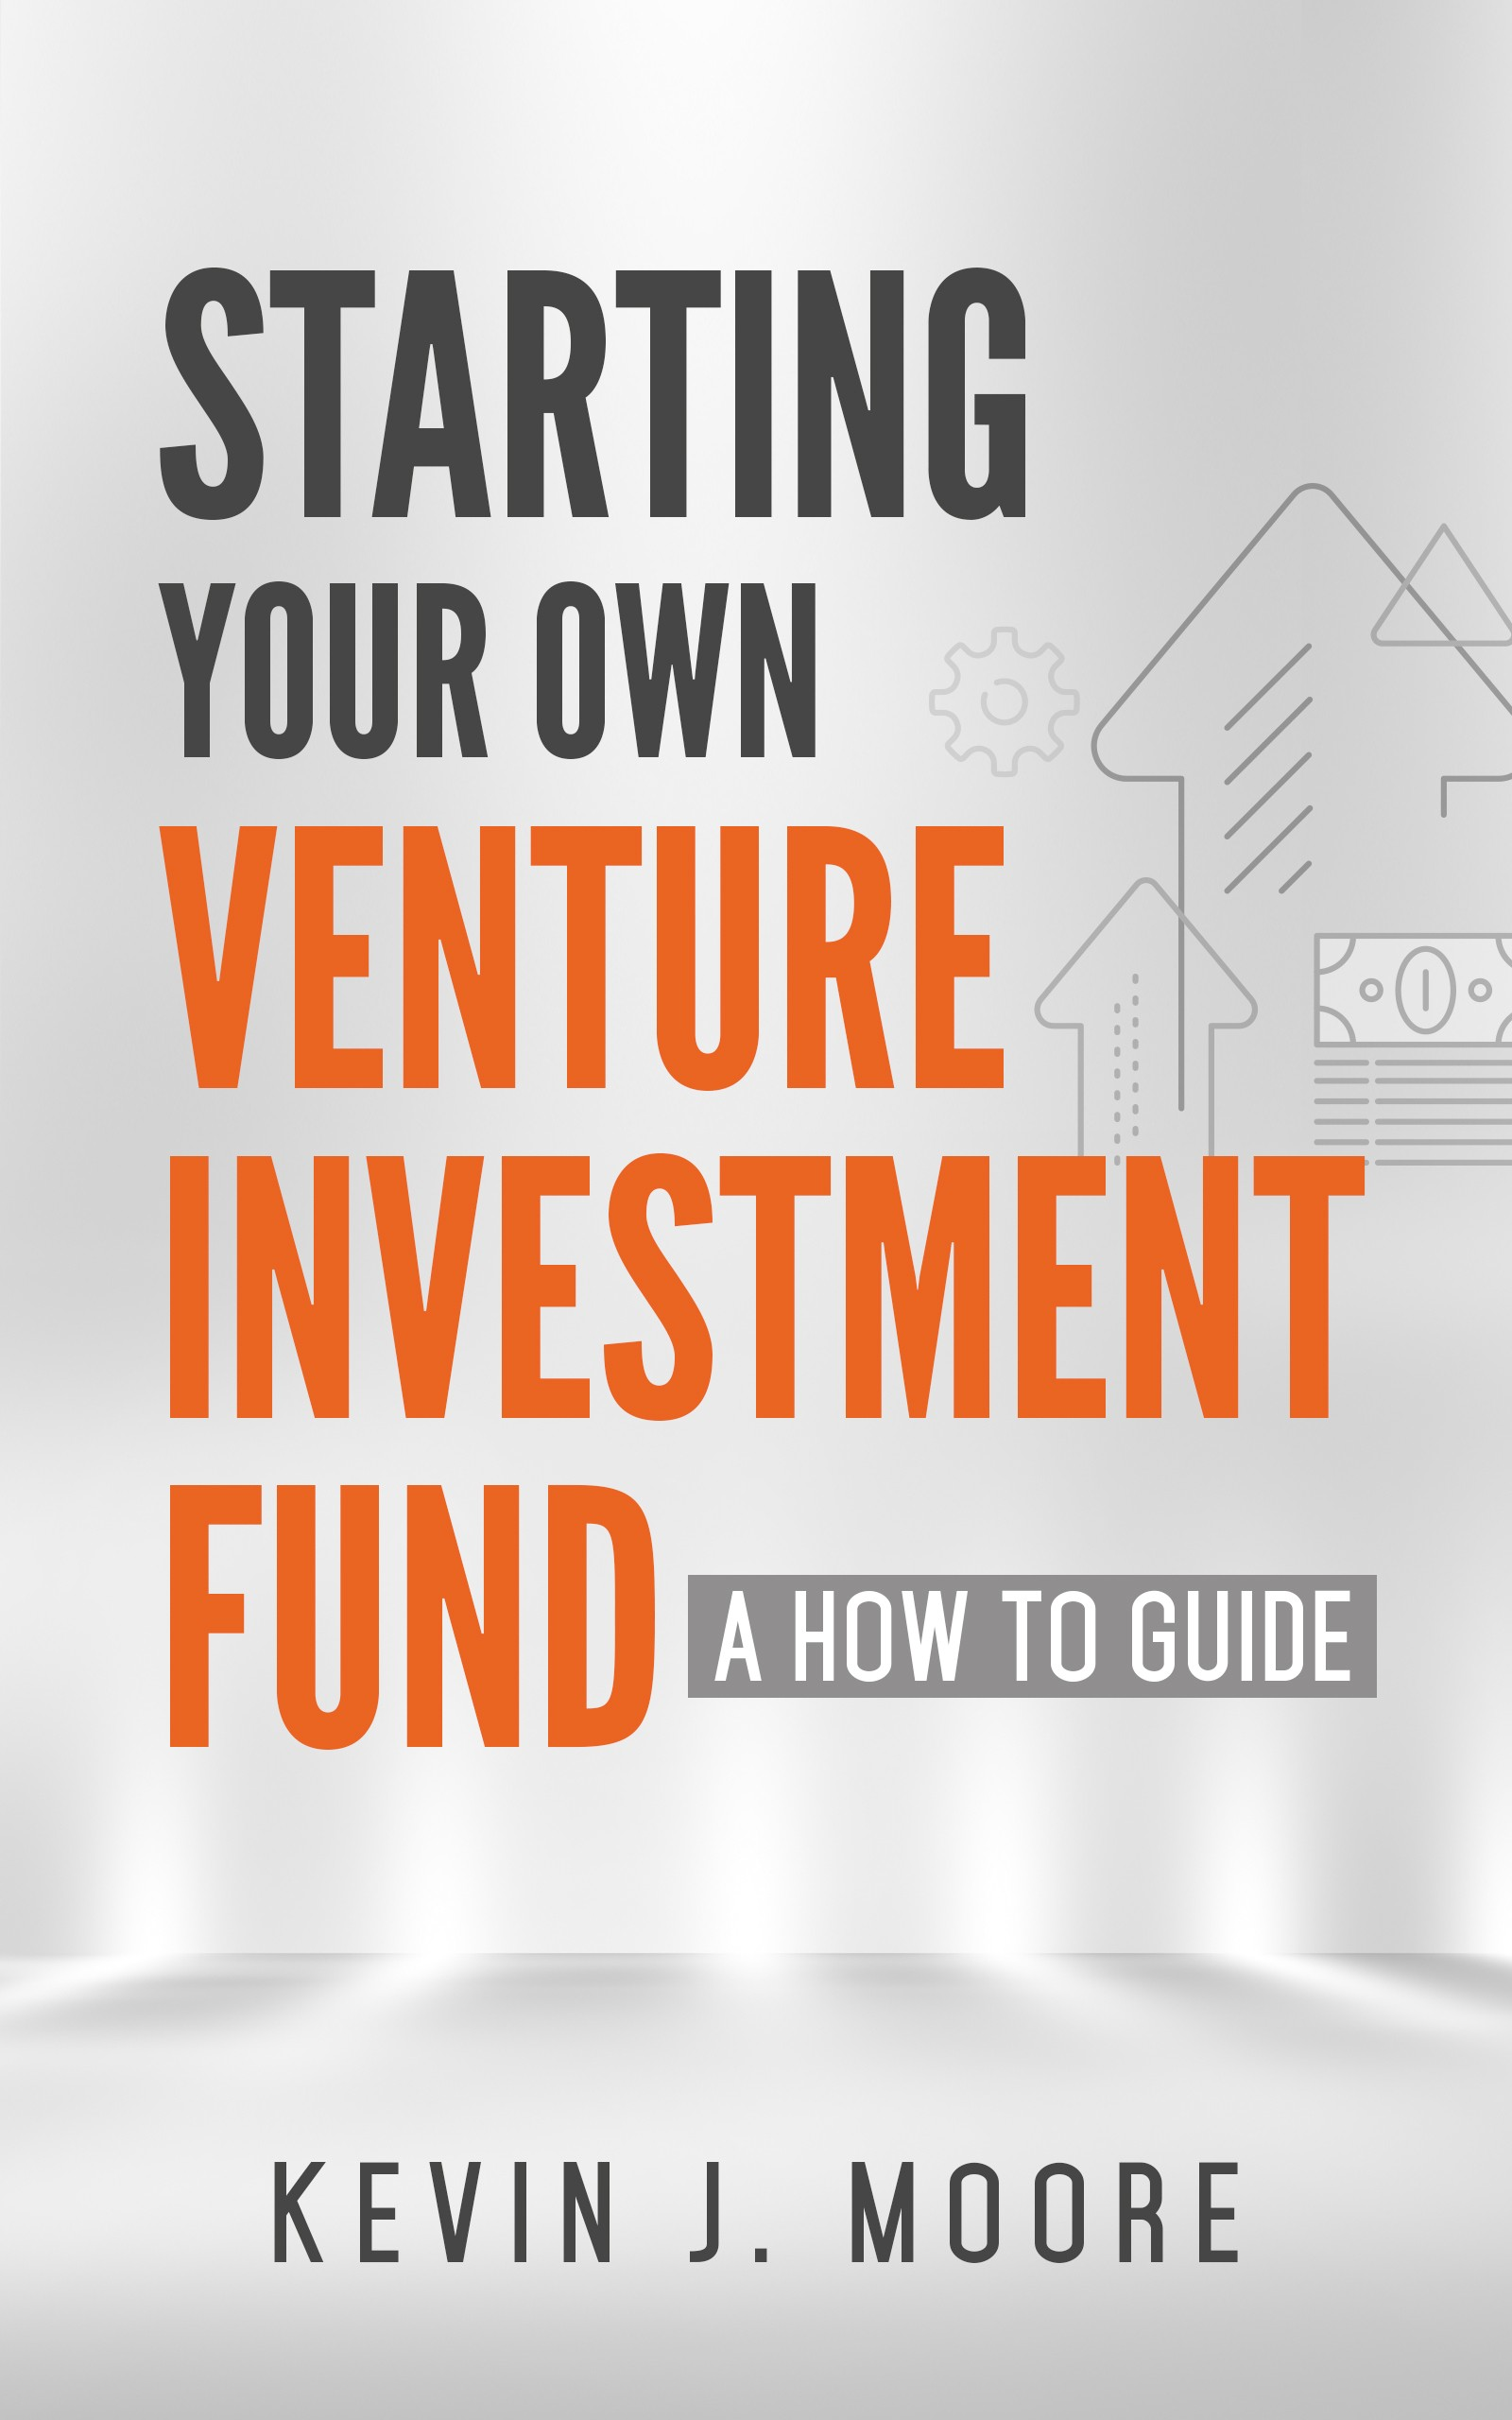 Starting Your Own Venture Investment Fund By Kevin Joseph Moore Startups Venture Capital